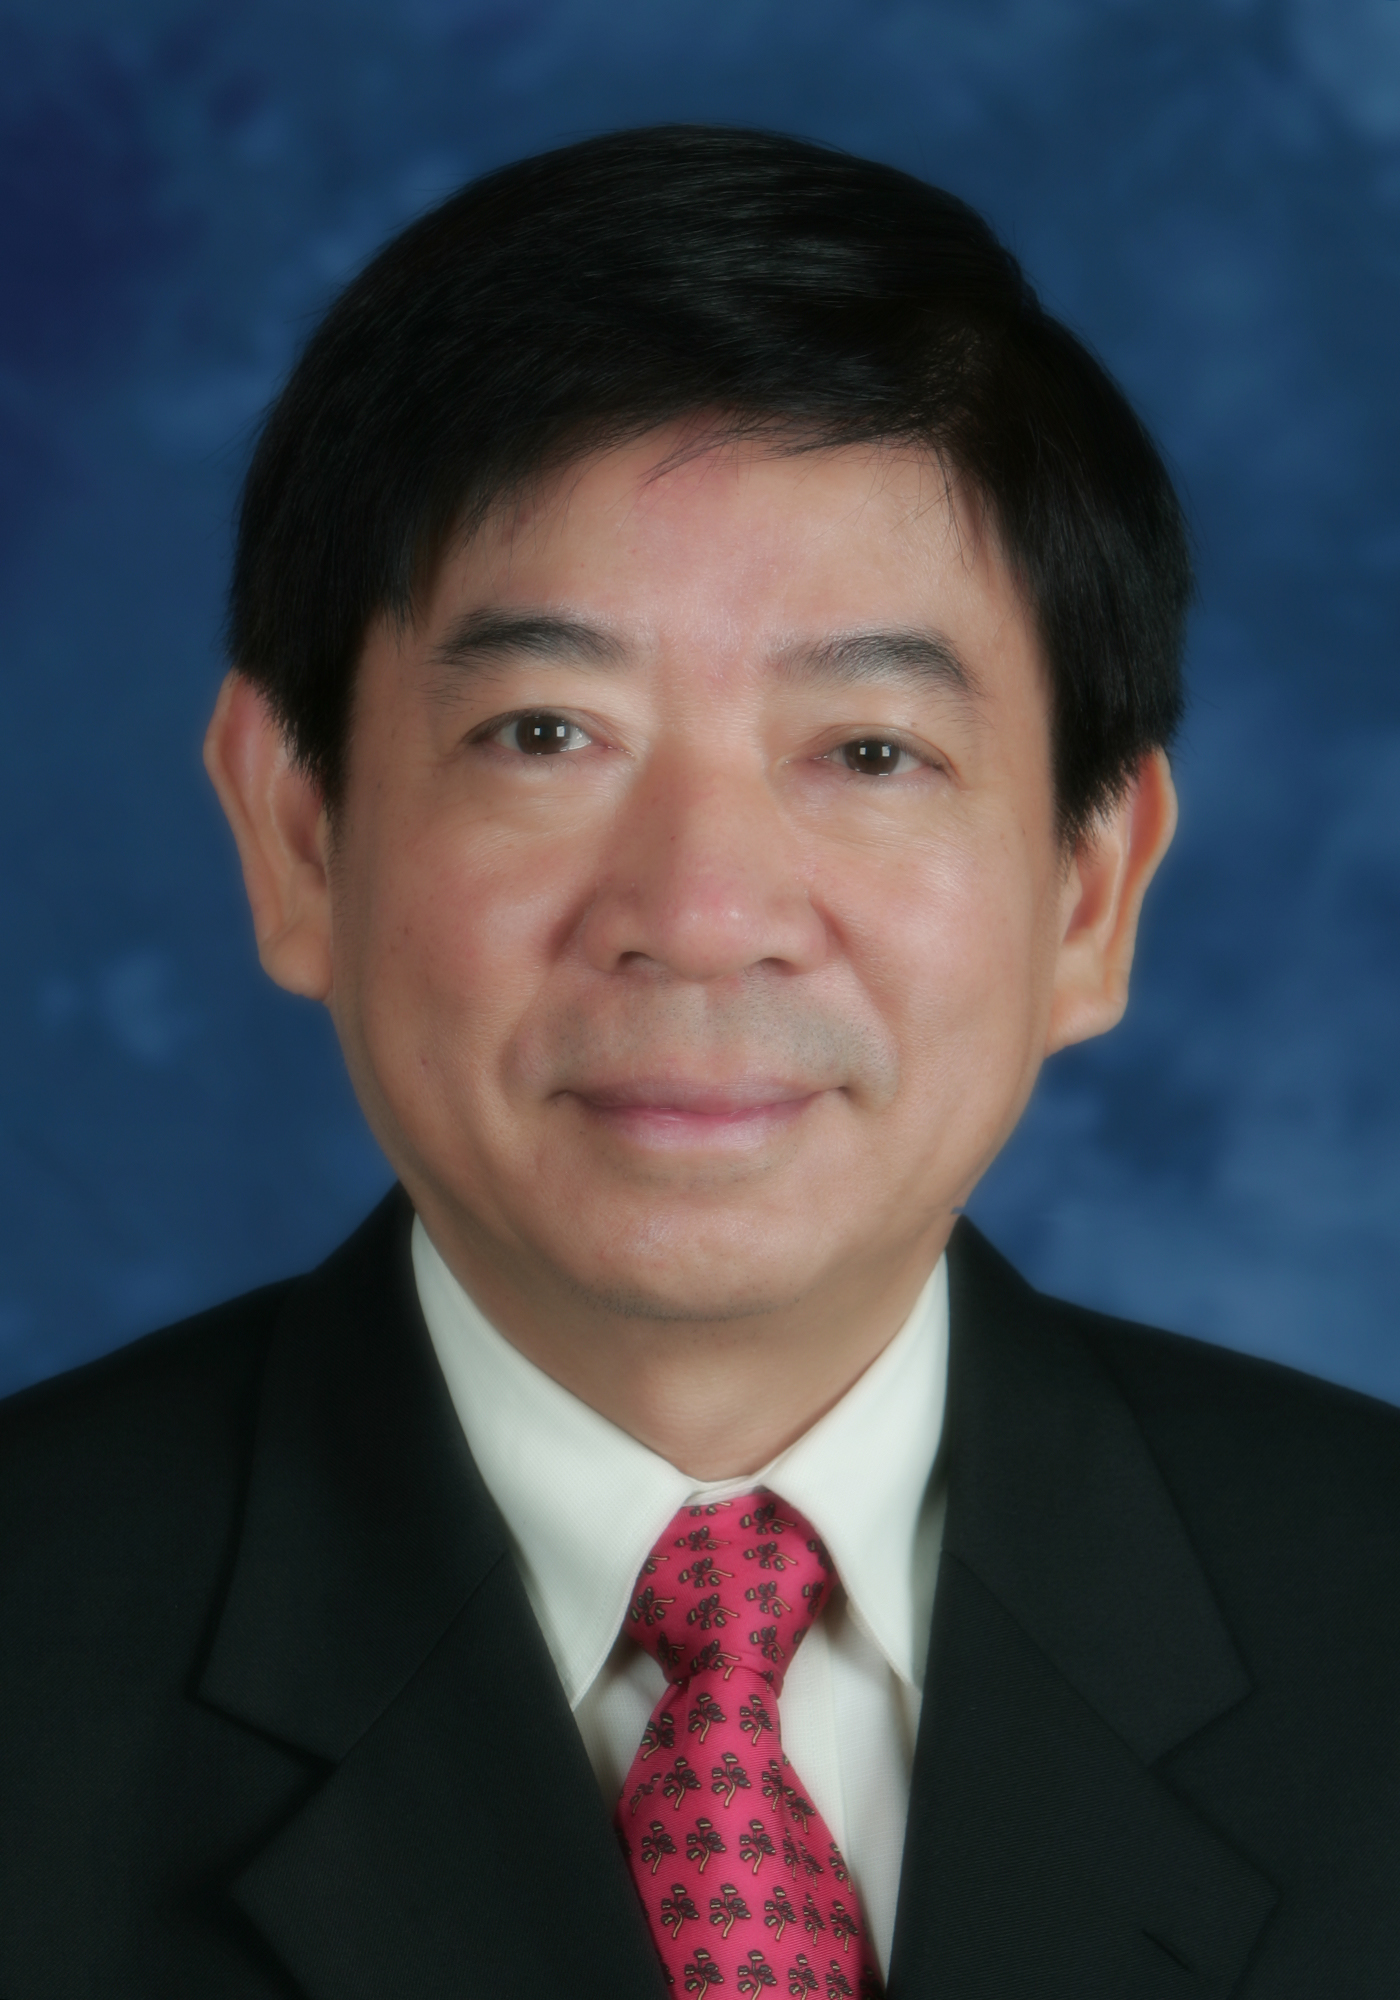 File:Minister Khaw Boon Wan.JPG - Wikipedia, the free encyclopedia